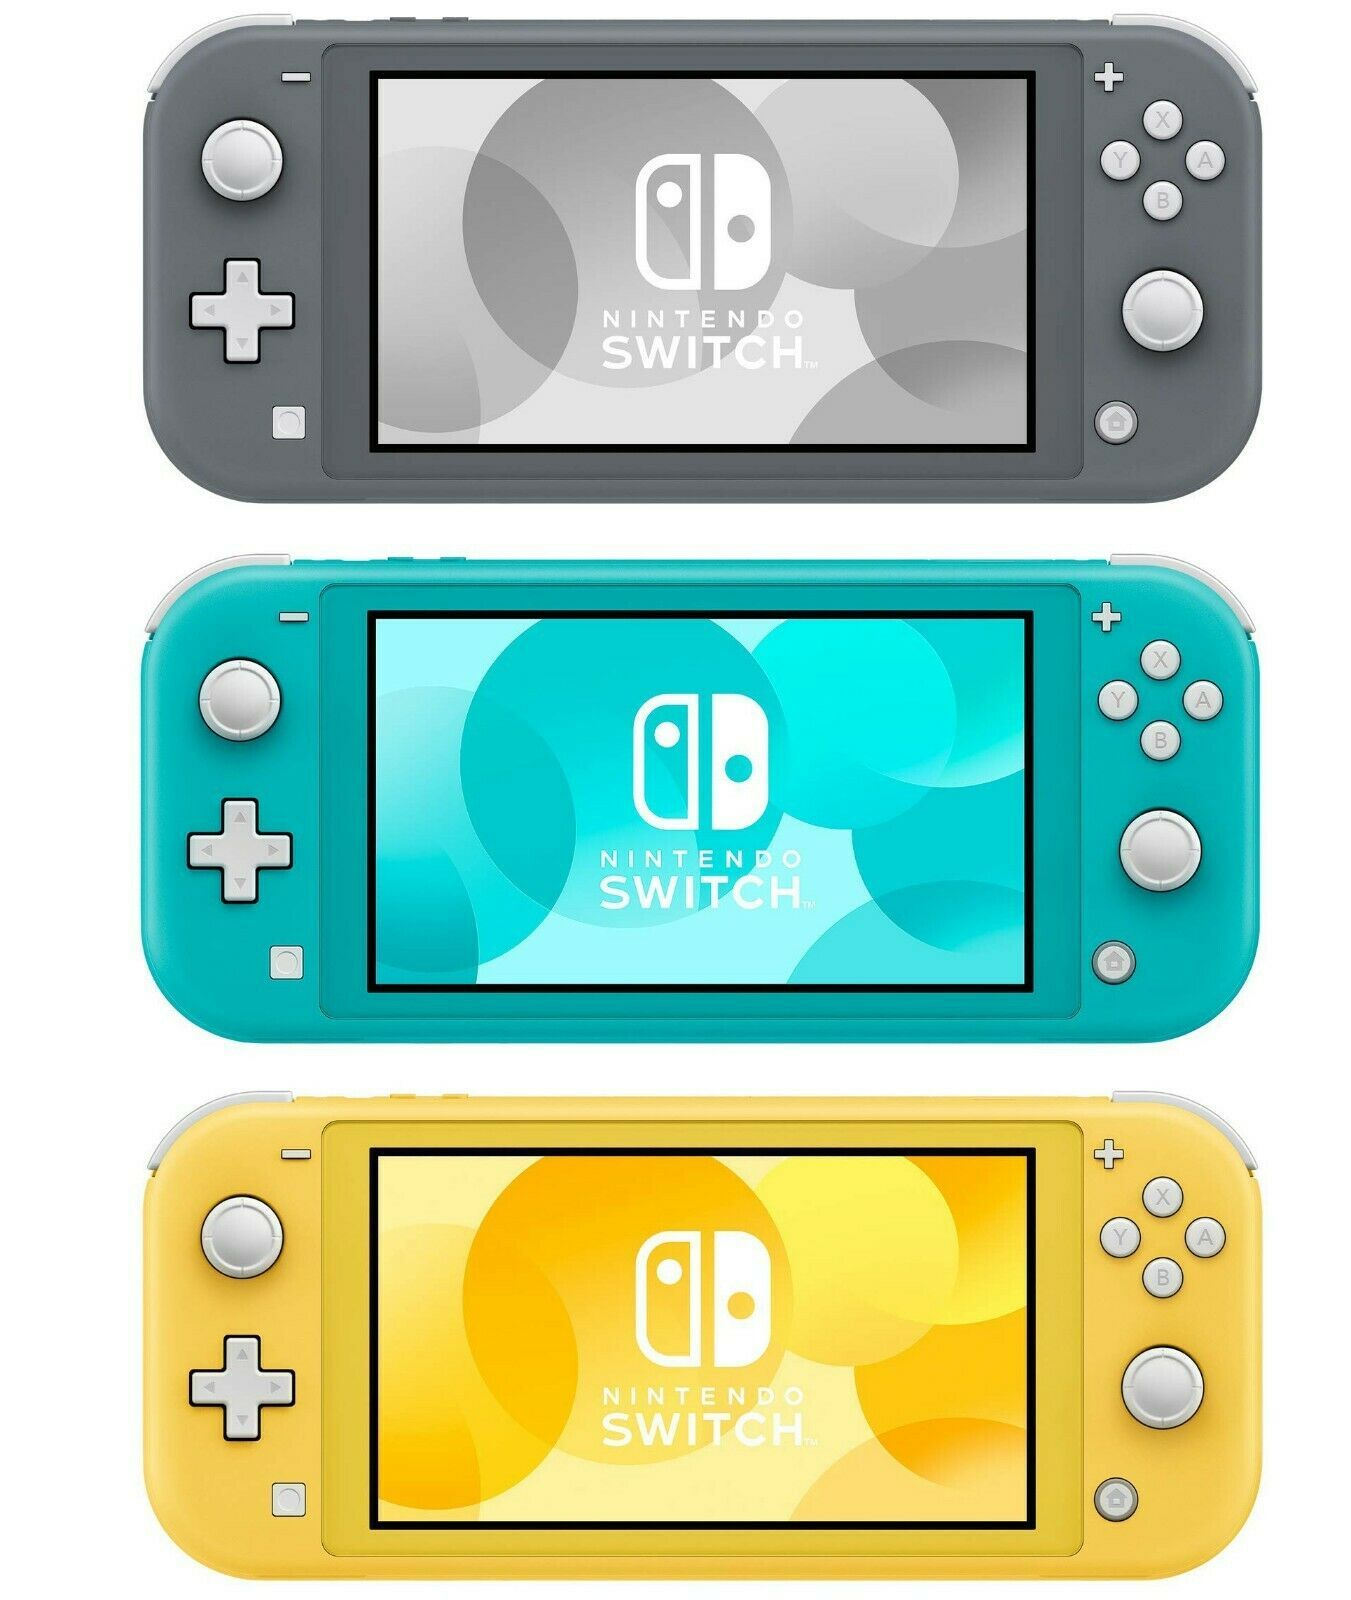 Us 219 99 Nintendo Switch Lite 32gb Handheld Video Game Console With Choice Of Game Bundle Handheld Video Games Nintendo Nintendo Switch System